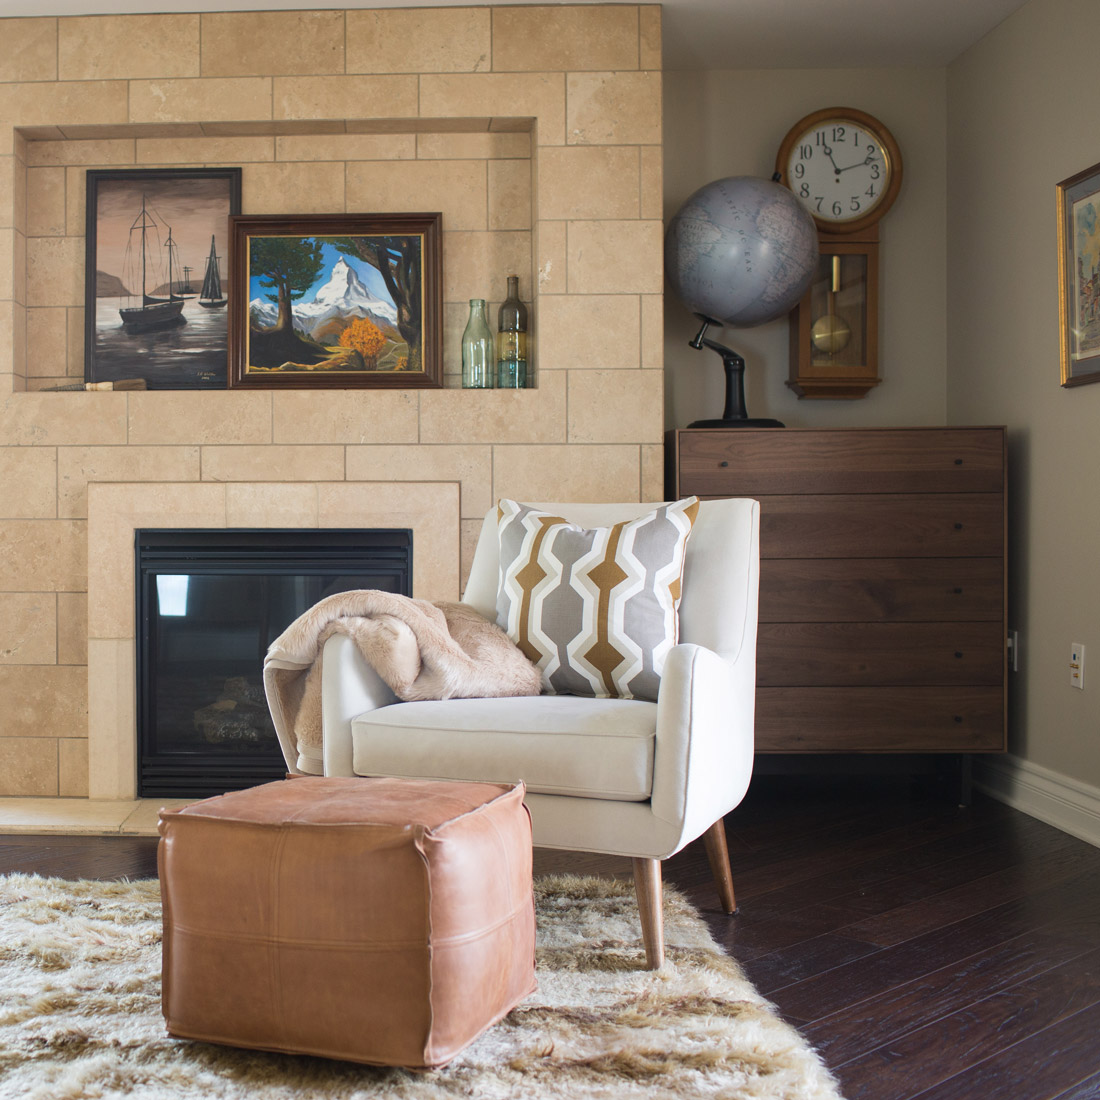 A modern midcentury seating area in a master bedroom in pasadena california modern white upholstered chair with leather ottoman and shag rug walnut dresser with client artwork and world globe accent the space with marble fireplace